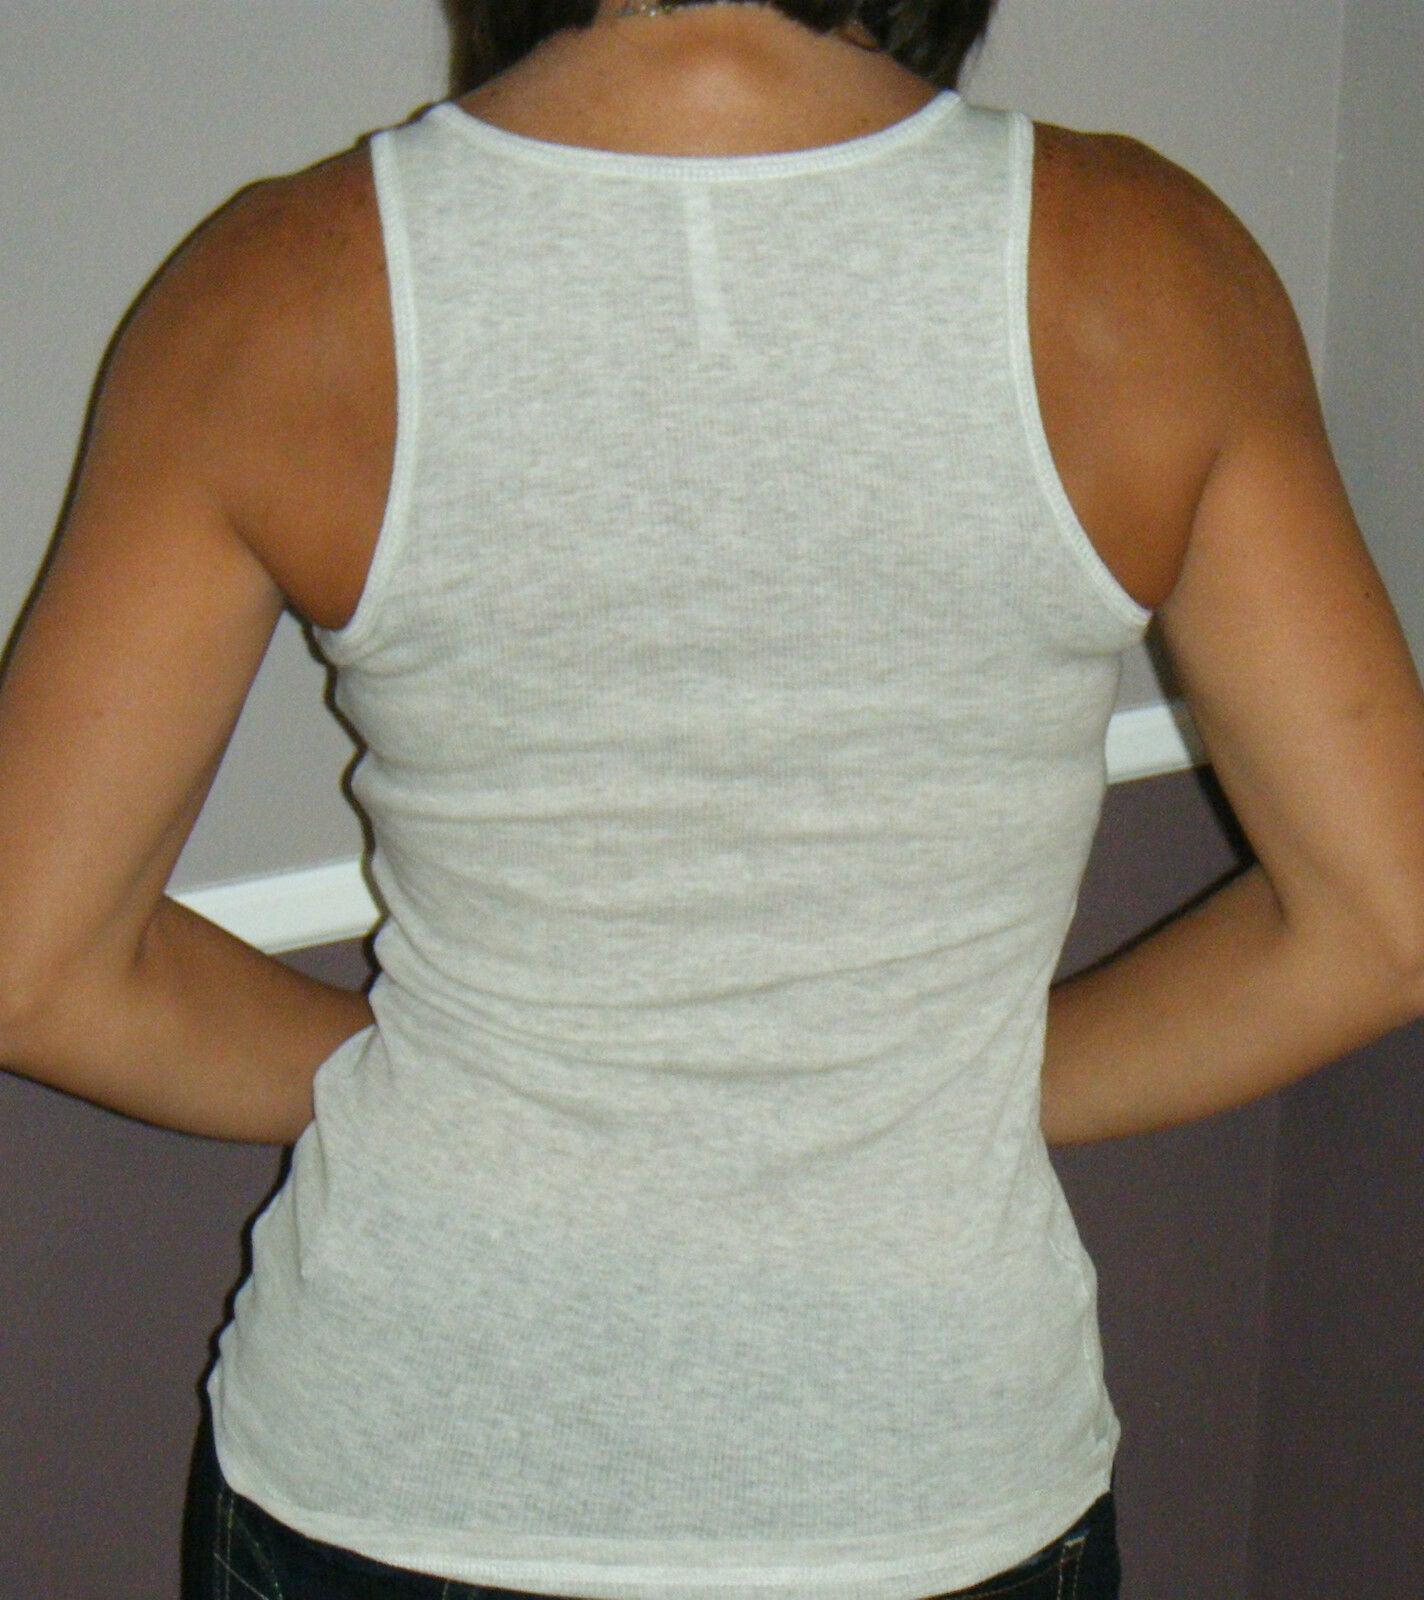 Sexy Ribbed Boy Beater Low Cut Scoop Neck Summer Tank Top Heather Taupe S/M/L